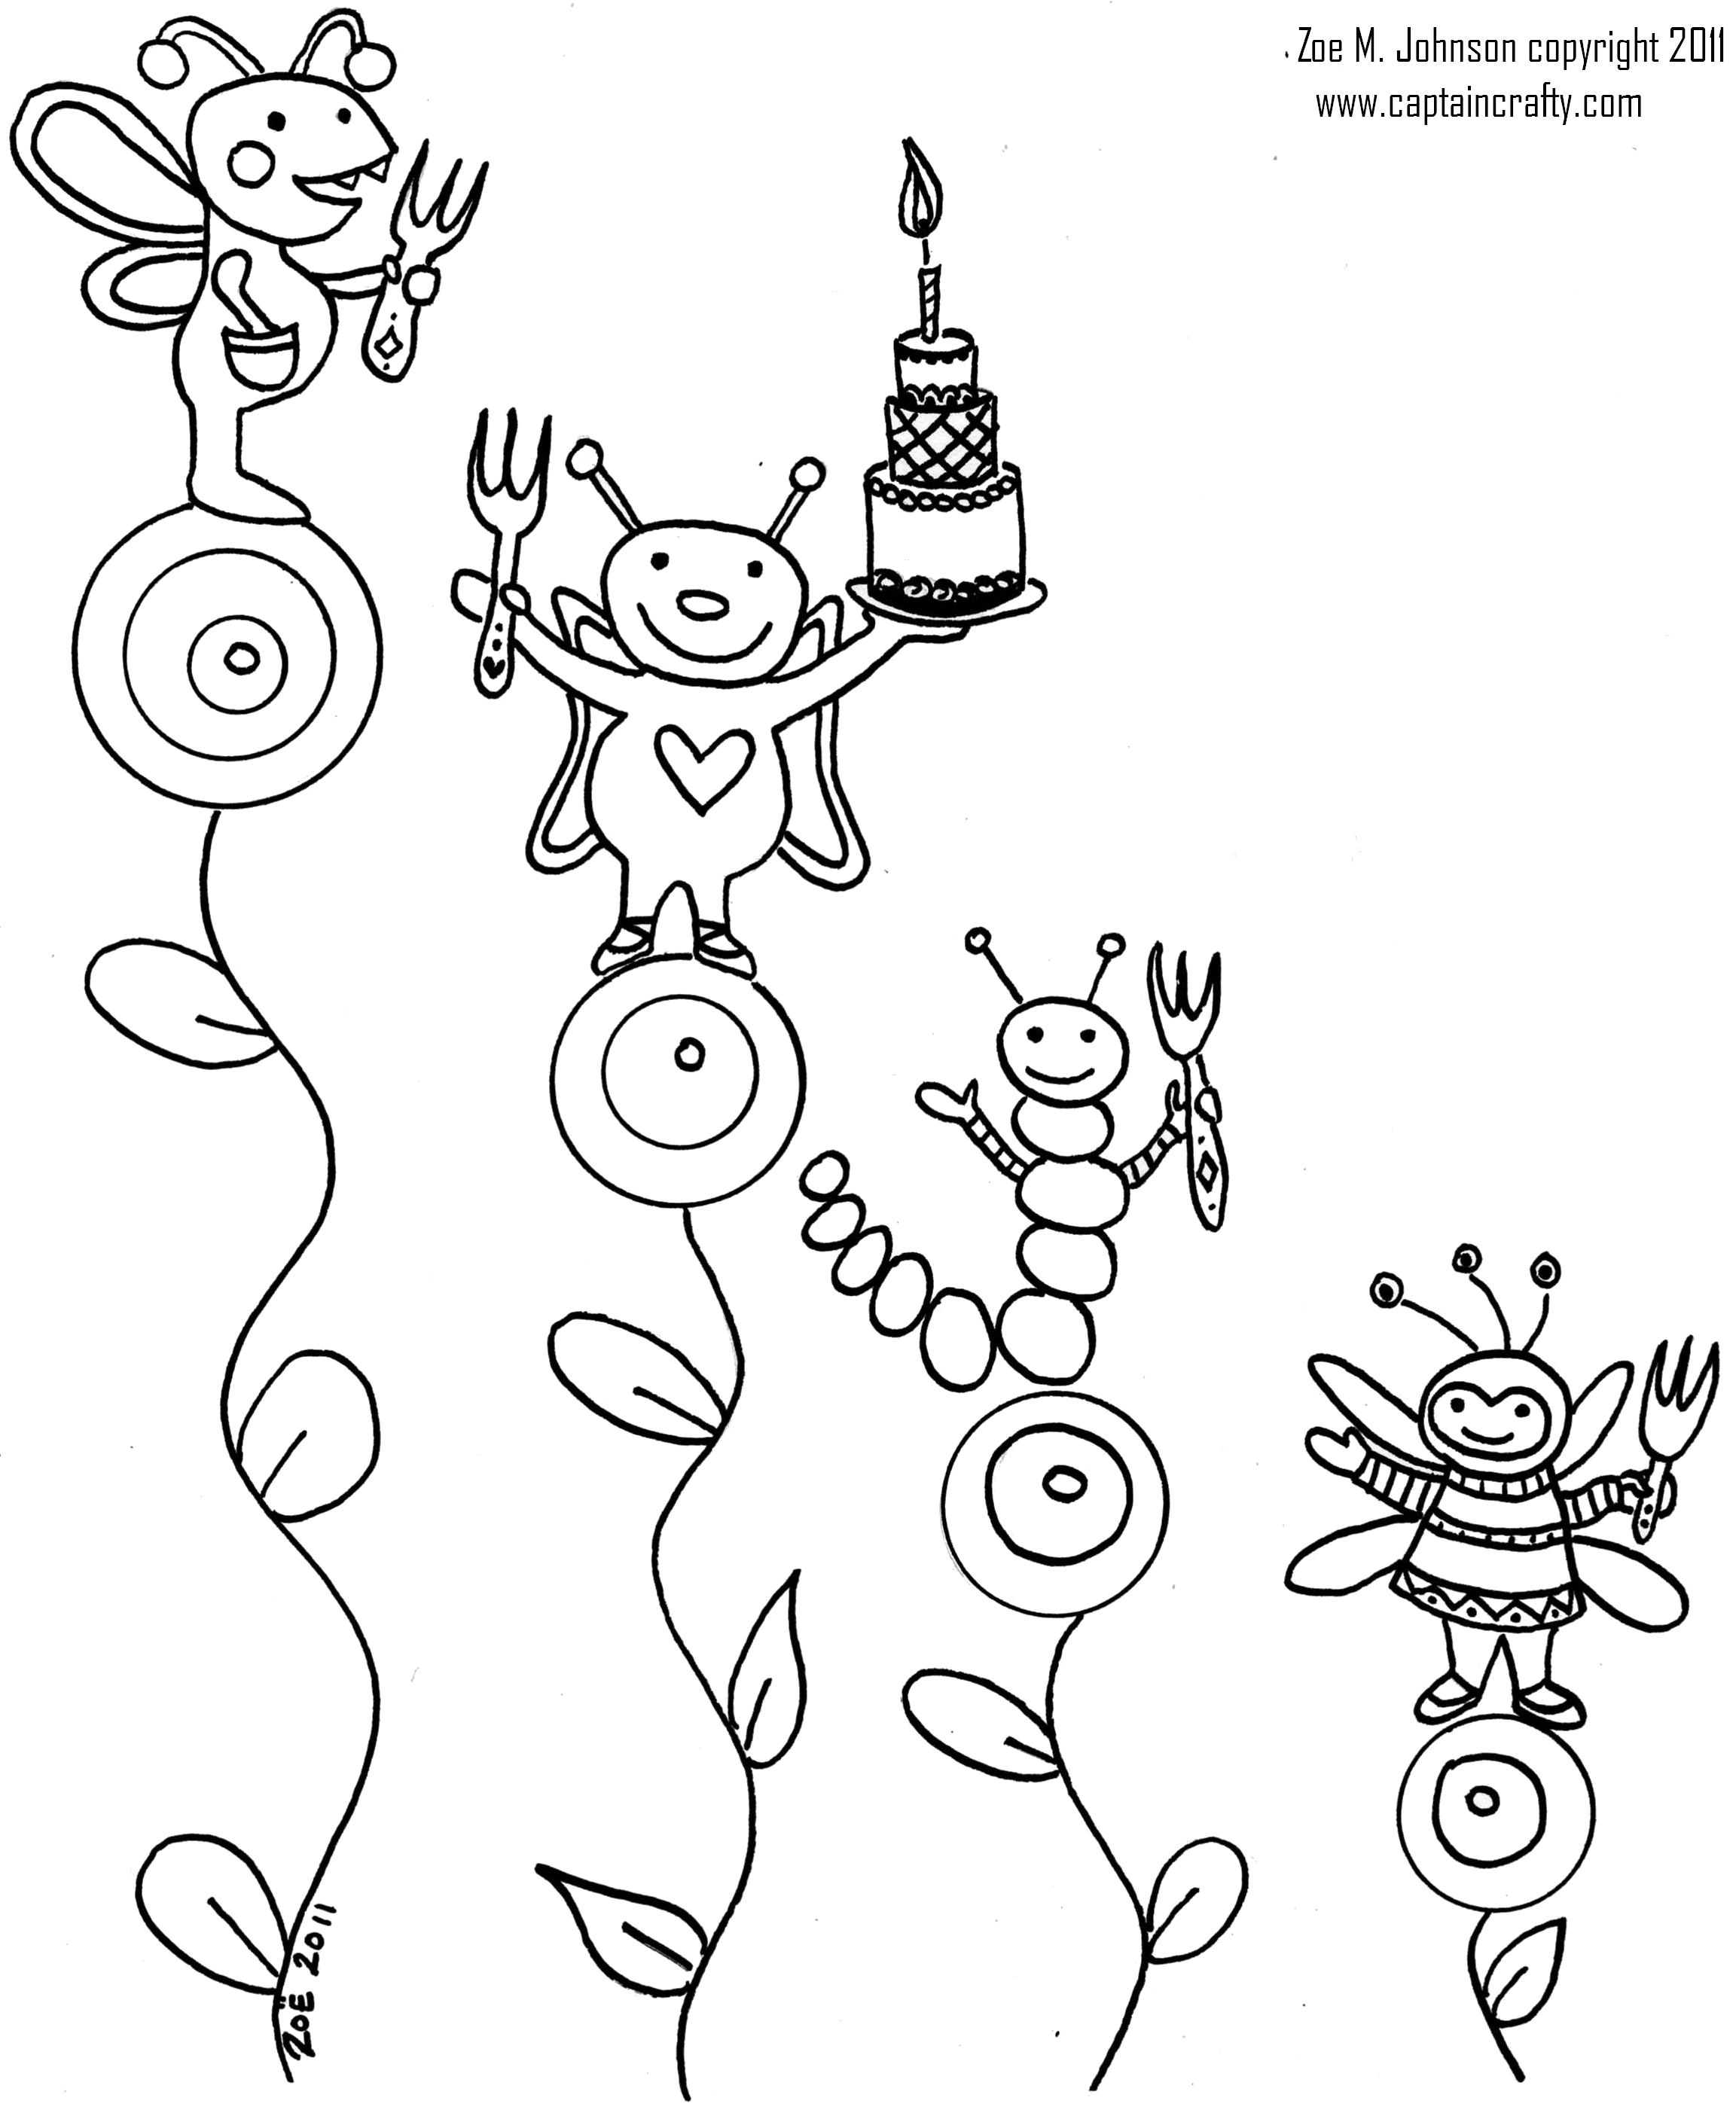 coloring pages bugs insects to color for kids insects kids coloring pages coloring pages bugs